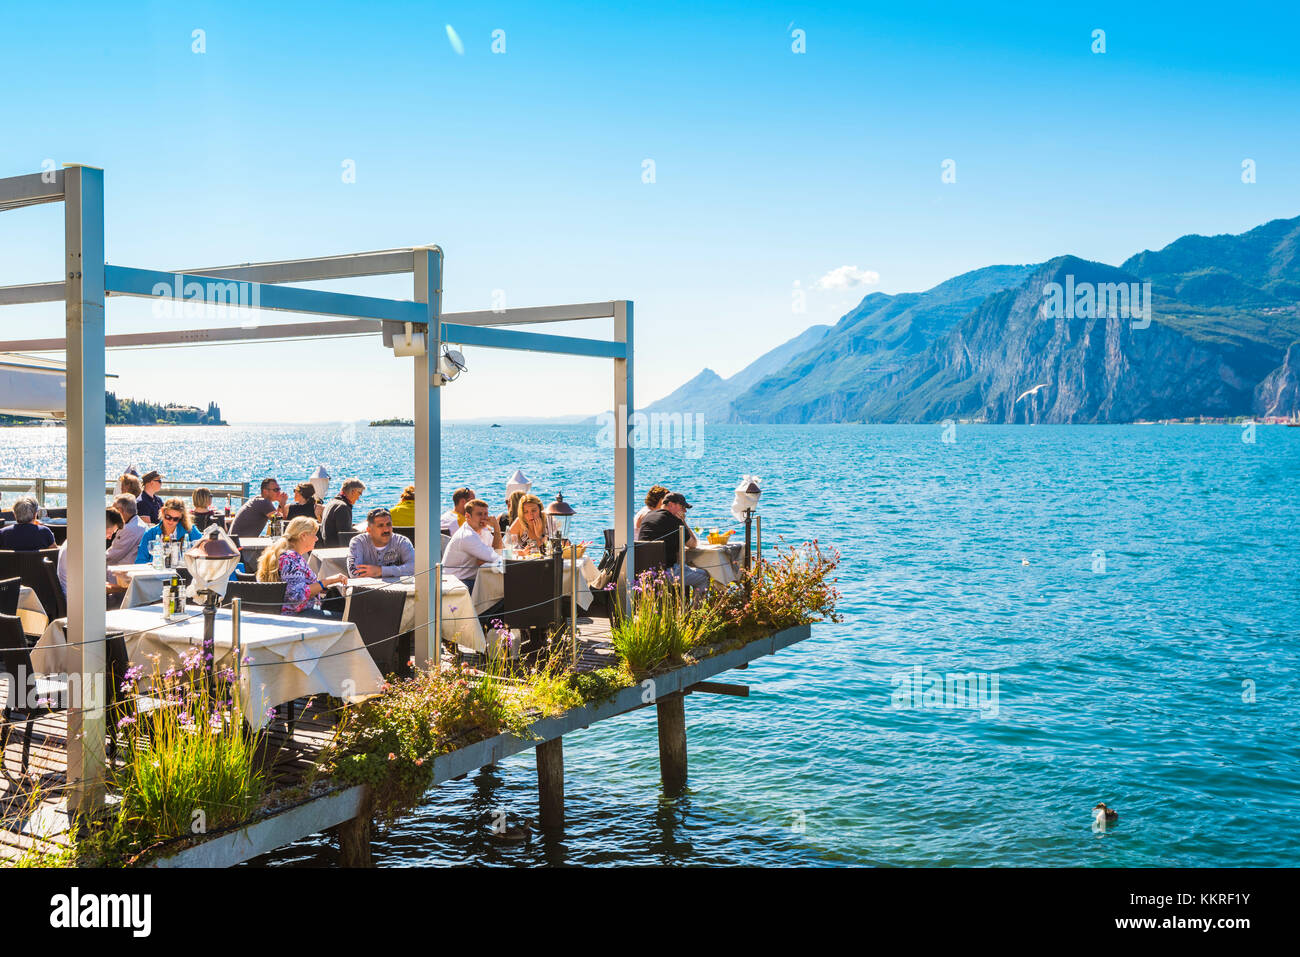 Malcesine, lake Garda, Verona province, Veneto, Italy. Tourists eating out in a restaurant on water. Stock Photo